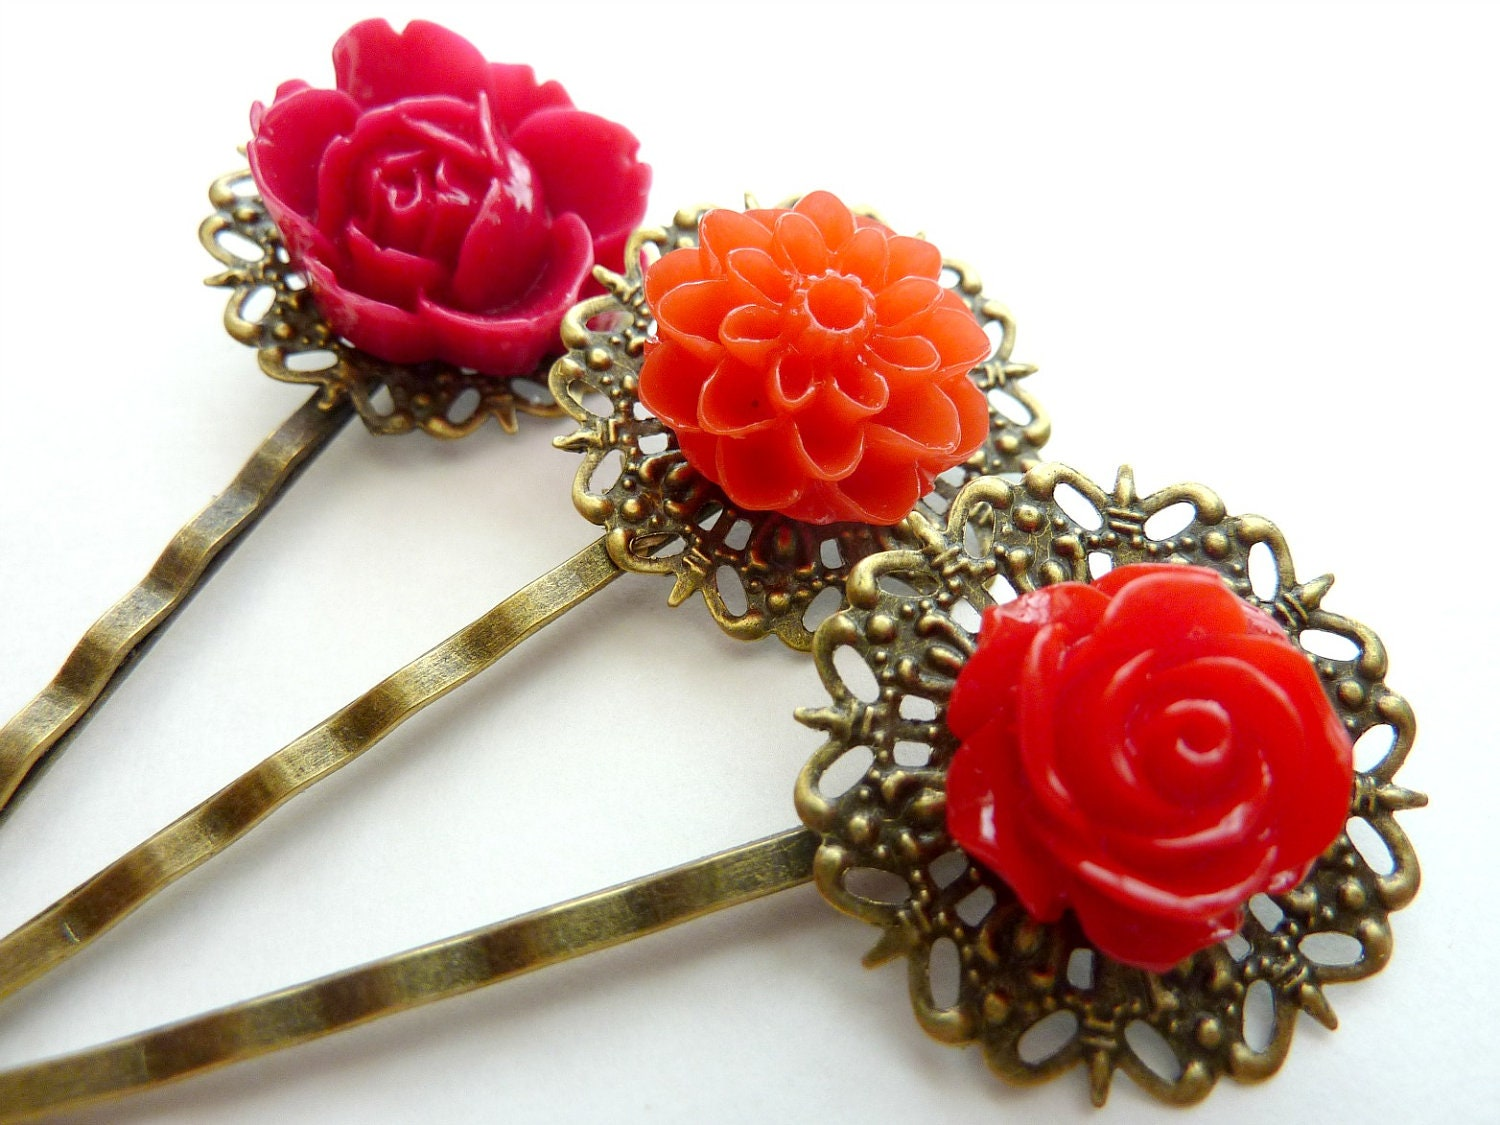 Vintage flower hair clips